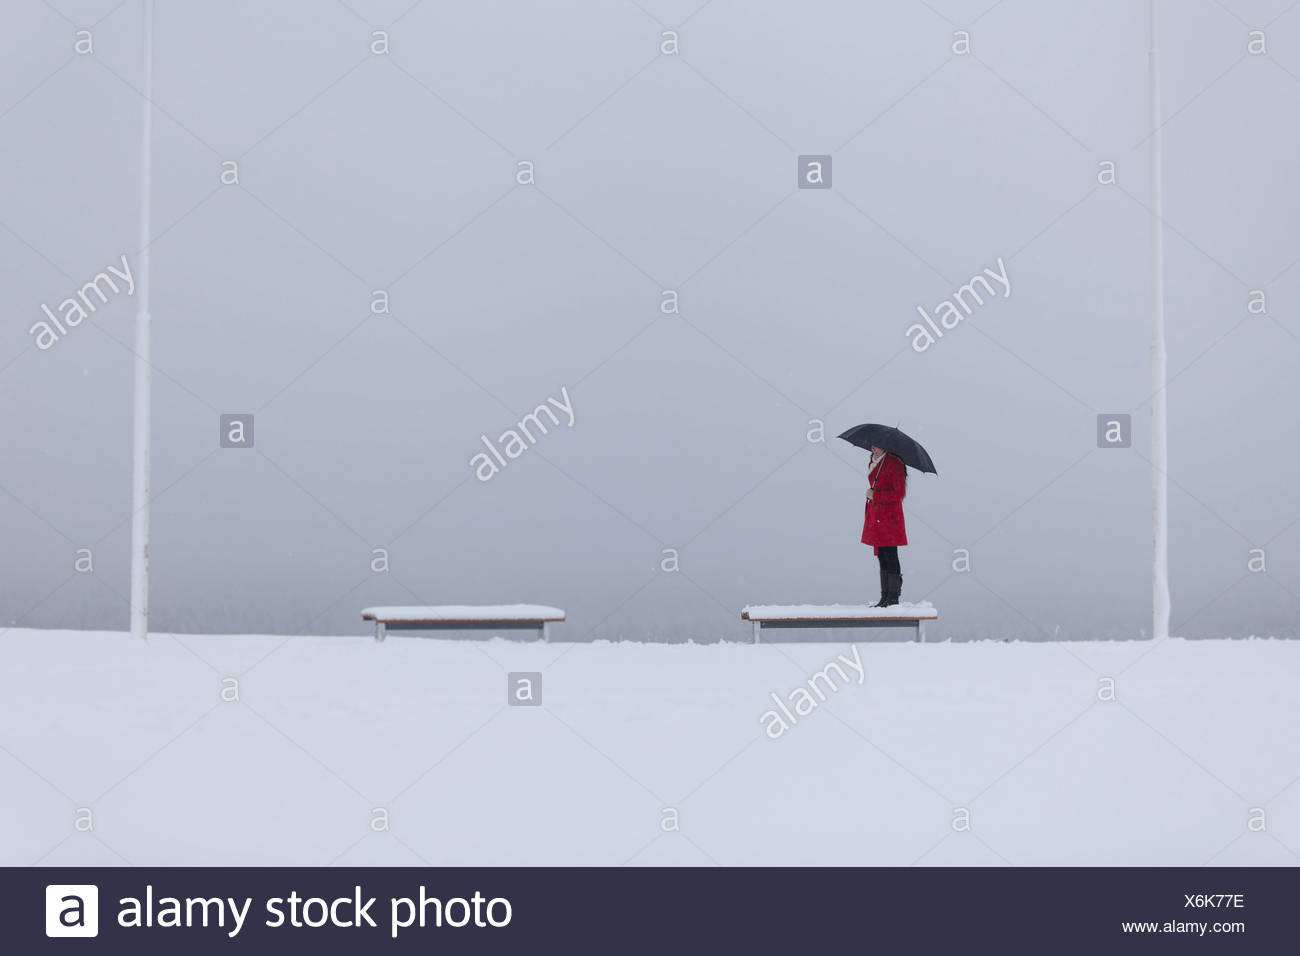 Solitary figure of a young woman wearing a red coat holding an umbrella standing on a bench in the snow - Stock Image